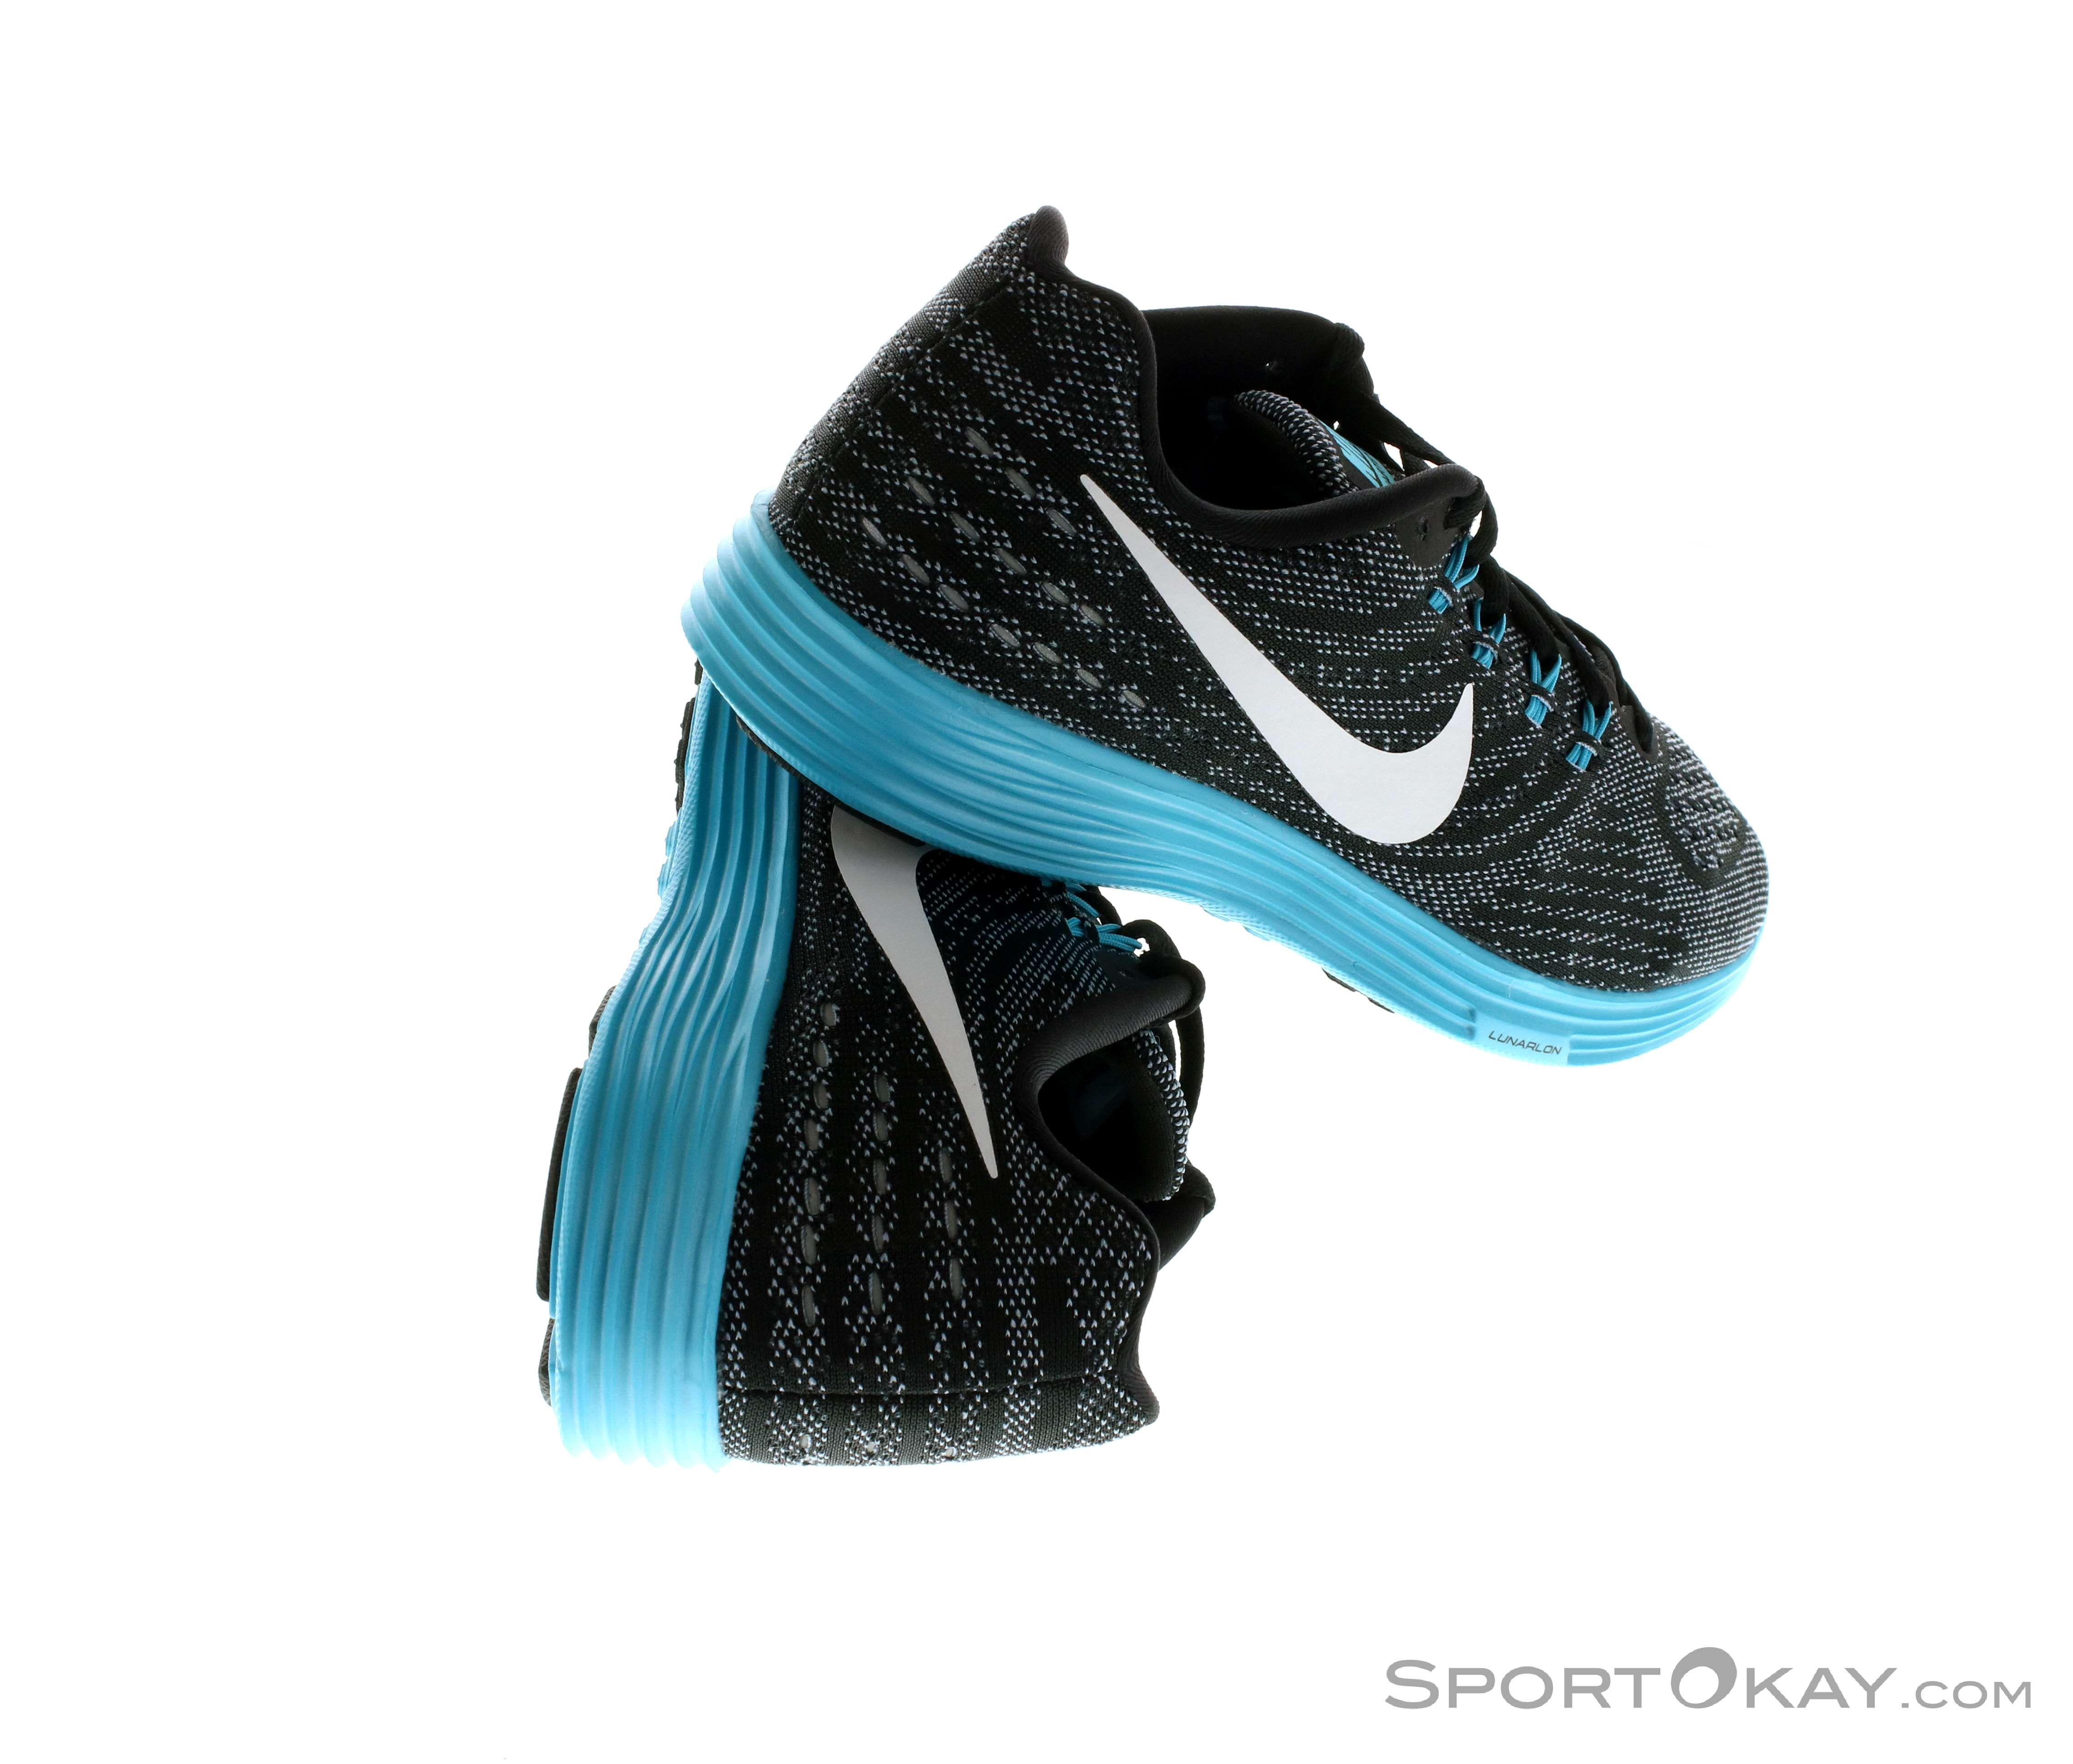 newest 1d892 eee5e Nike Lunartempo 2 Womens Running Shoes, Nike, Black, , Female, 0026-